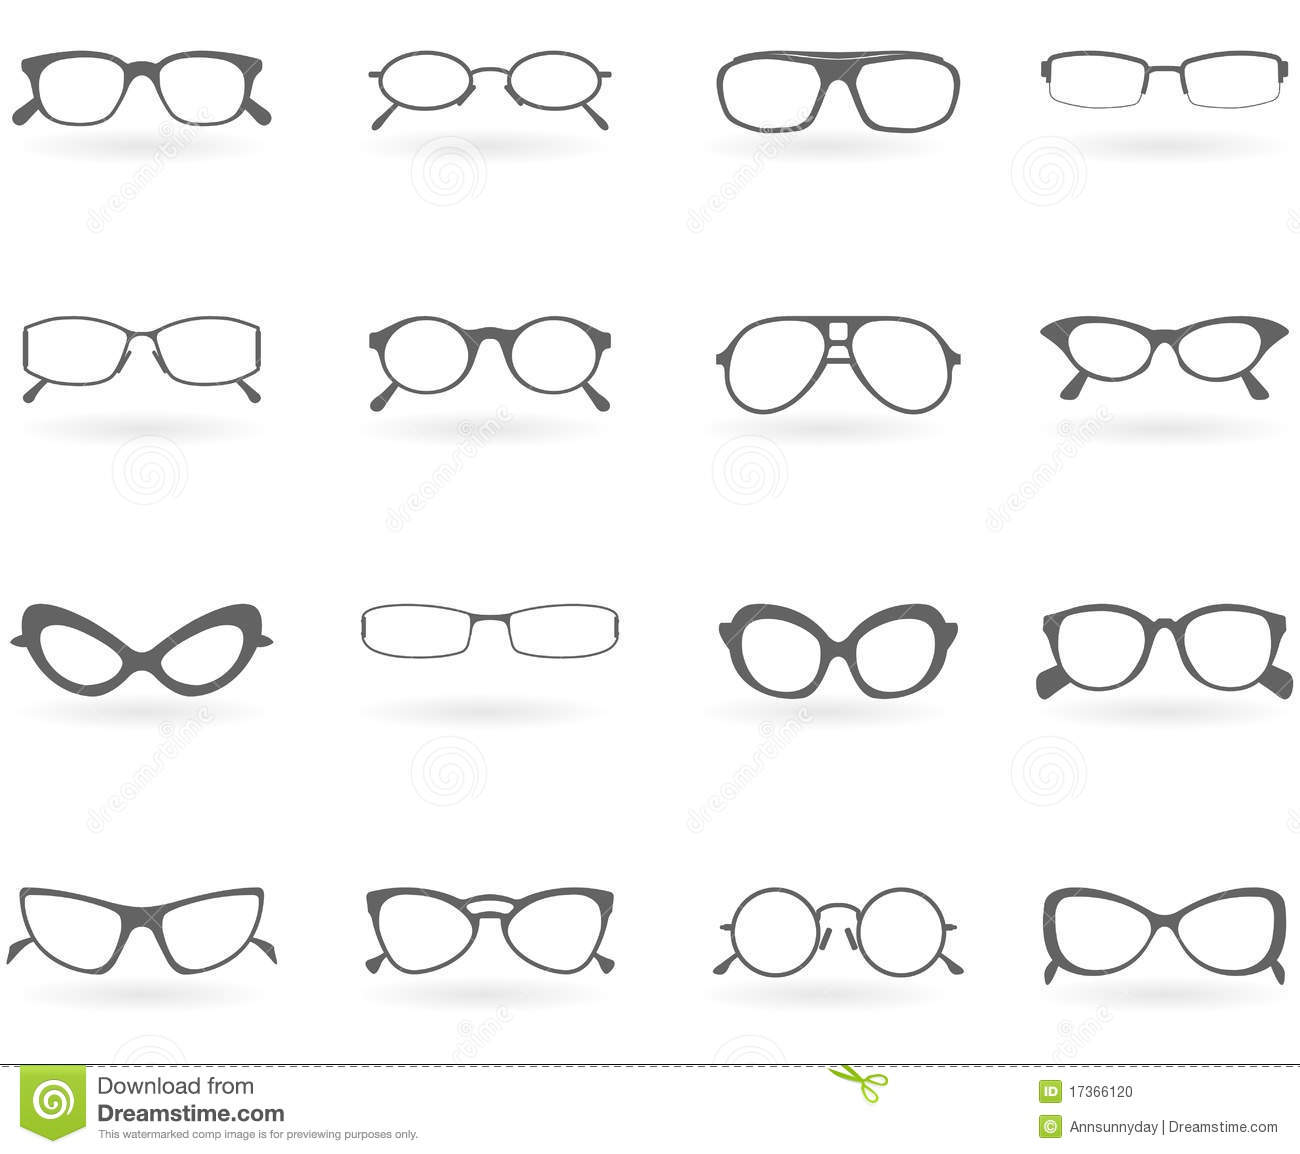 Different Glasses Frames Styles : Glasses In Different Styles Stock Photo - Image: 17366120